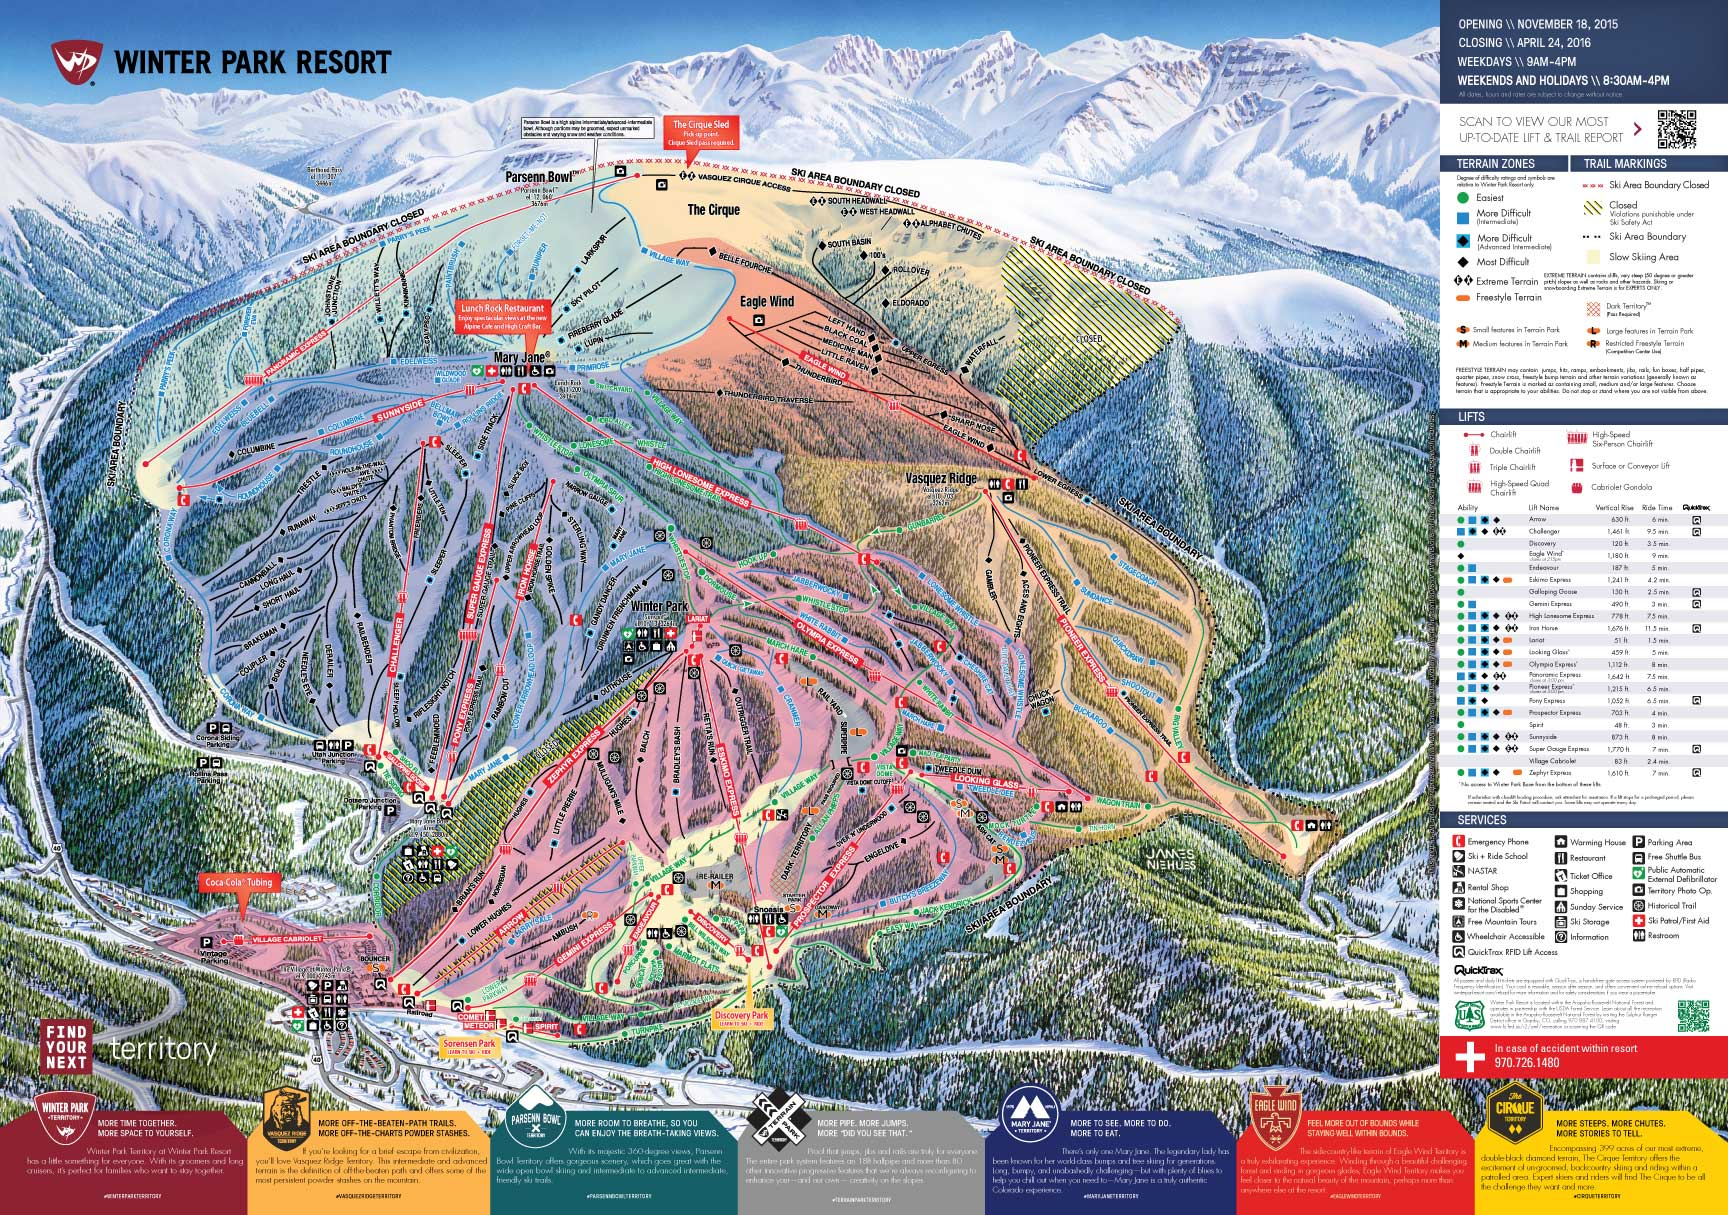 colorado ski resort map with Winter Park Resort on Skiresort besides 1031 additionally Westin Riverfront Resort And Spa At Beaver Creek Mountain also 313115 as well 503.